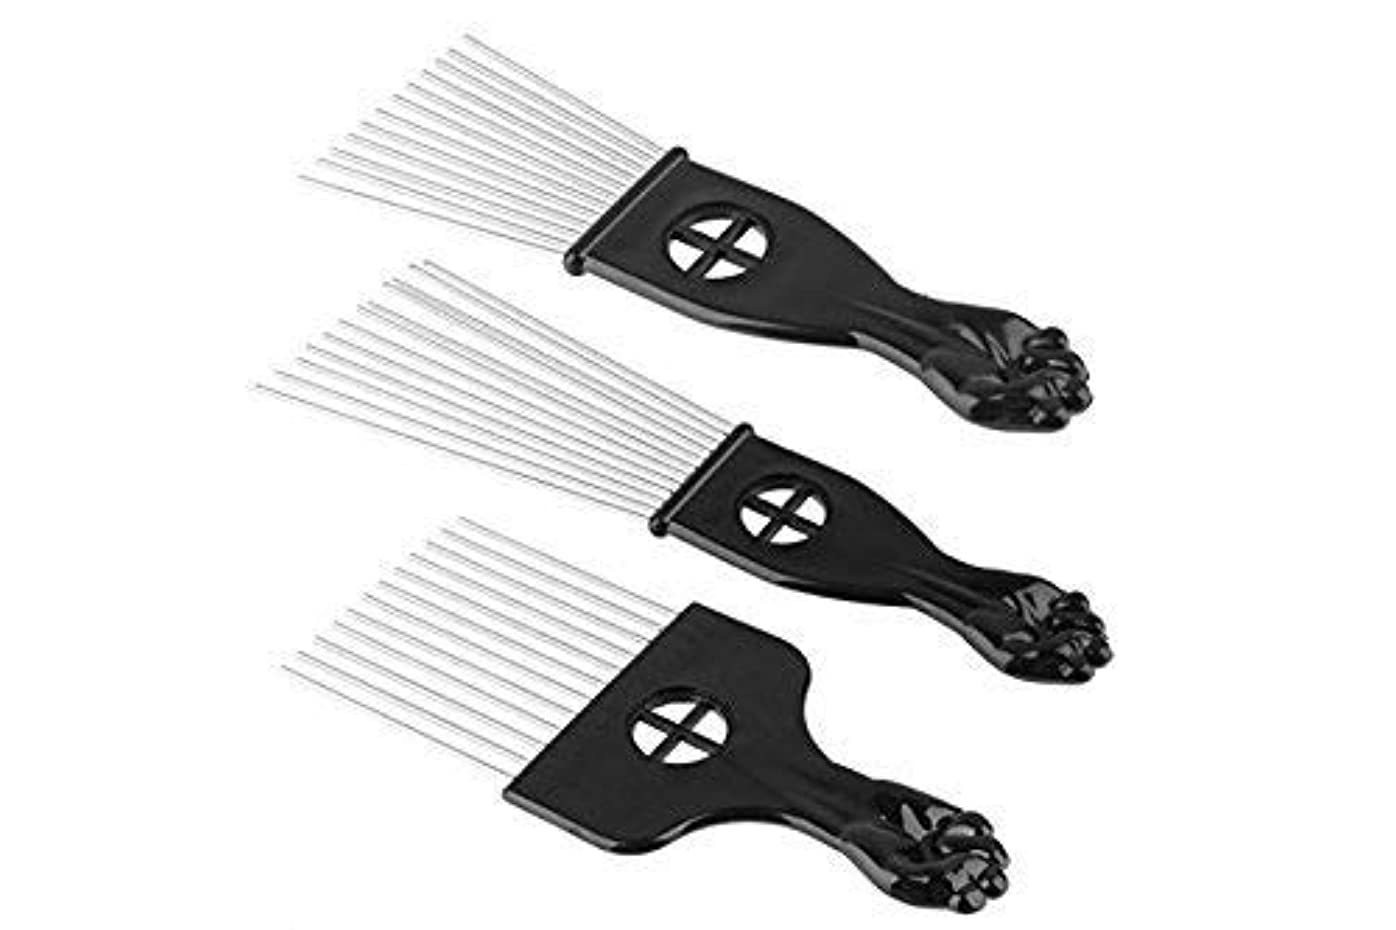 走る飲料忘れっぽい3Pc Metal Hair Styling Pik Afro Pick Comb For Volume & Tangles Black Fan Fist Hand Model [並行輸入品]